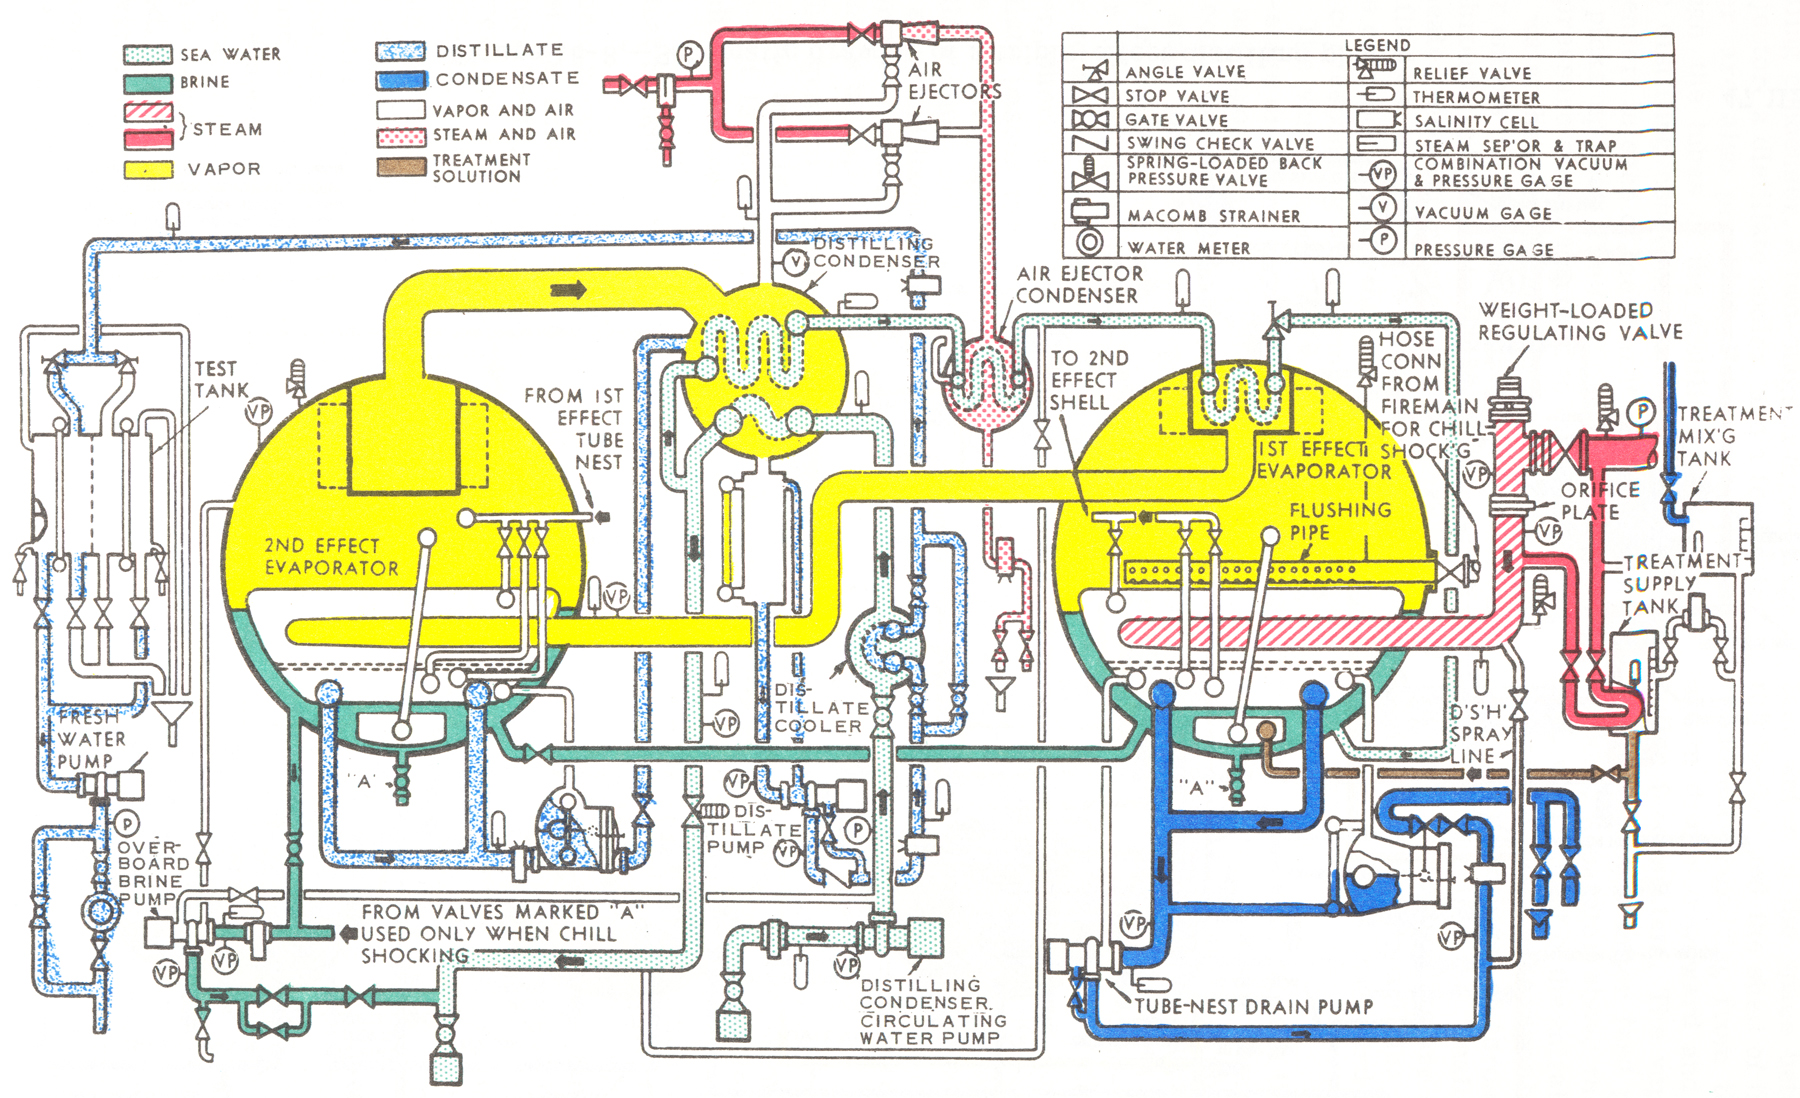 Undcoolingsys1 likewise Ventilation Solutions furthermore Engineering Considerations also District Cooling Design Case Study in addition 2011 11 Fujitsu Cooling Technology Cpu. on chilled water schematic diagram